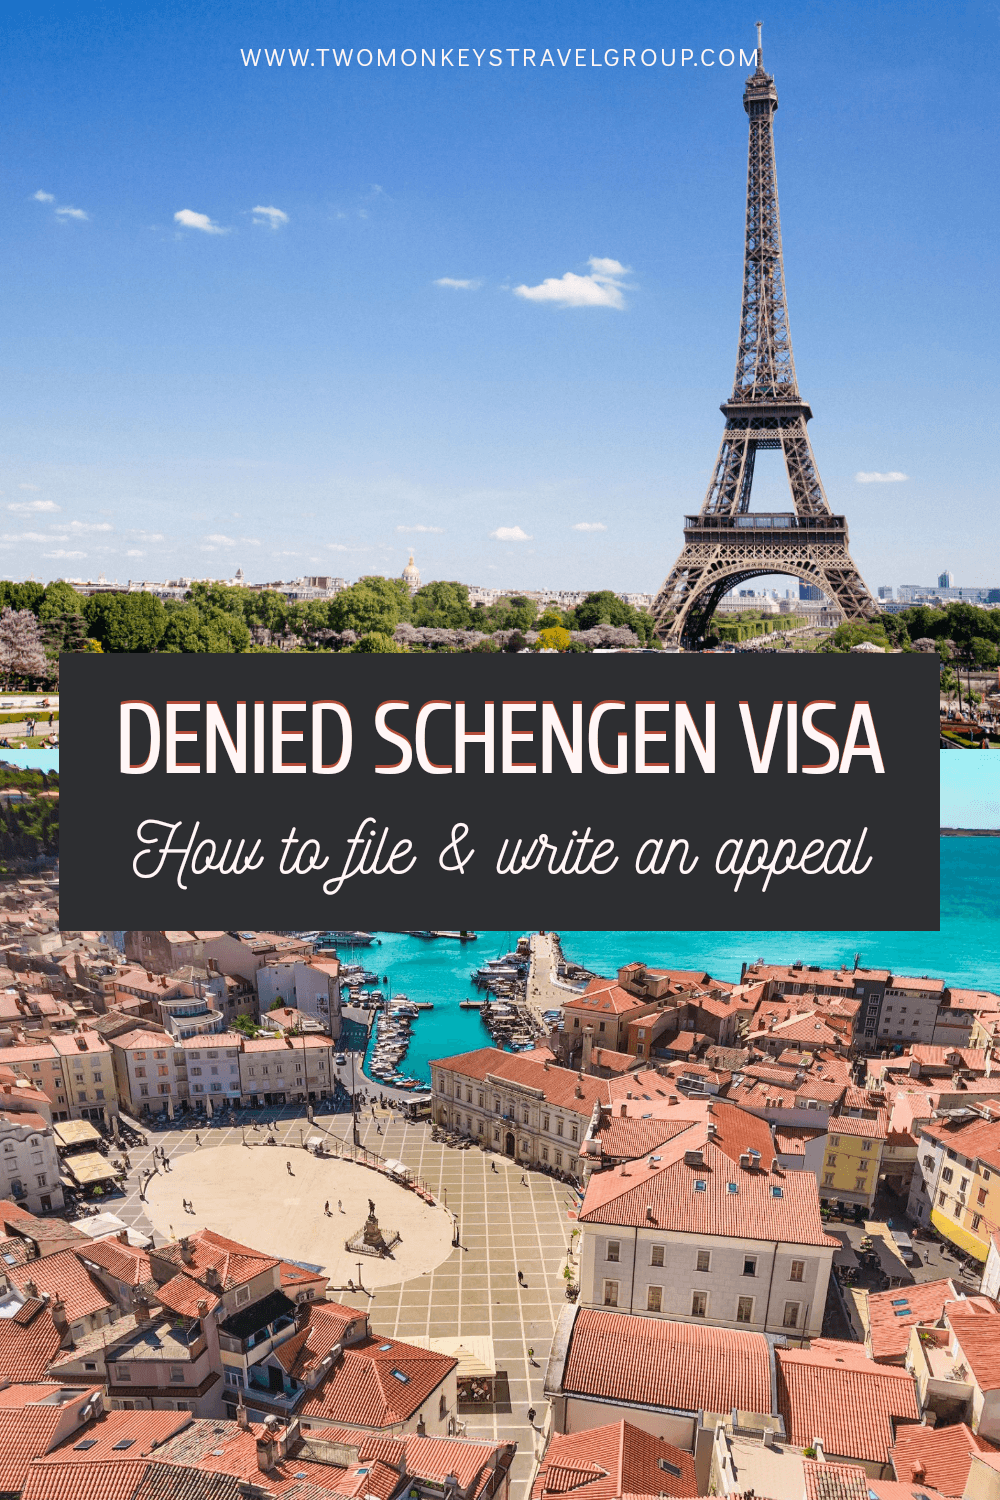 How to File an Appeal for a Rejected Schengen Visa